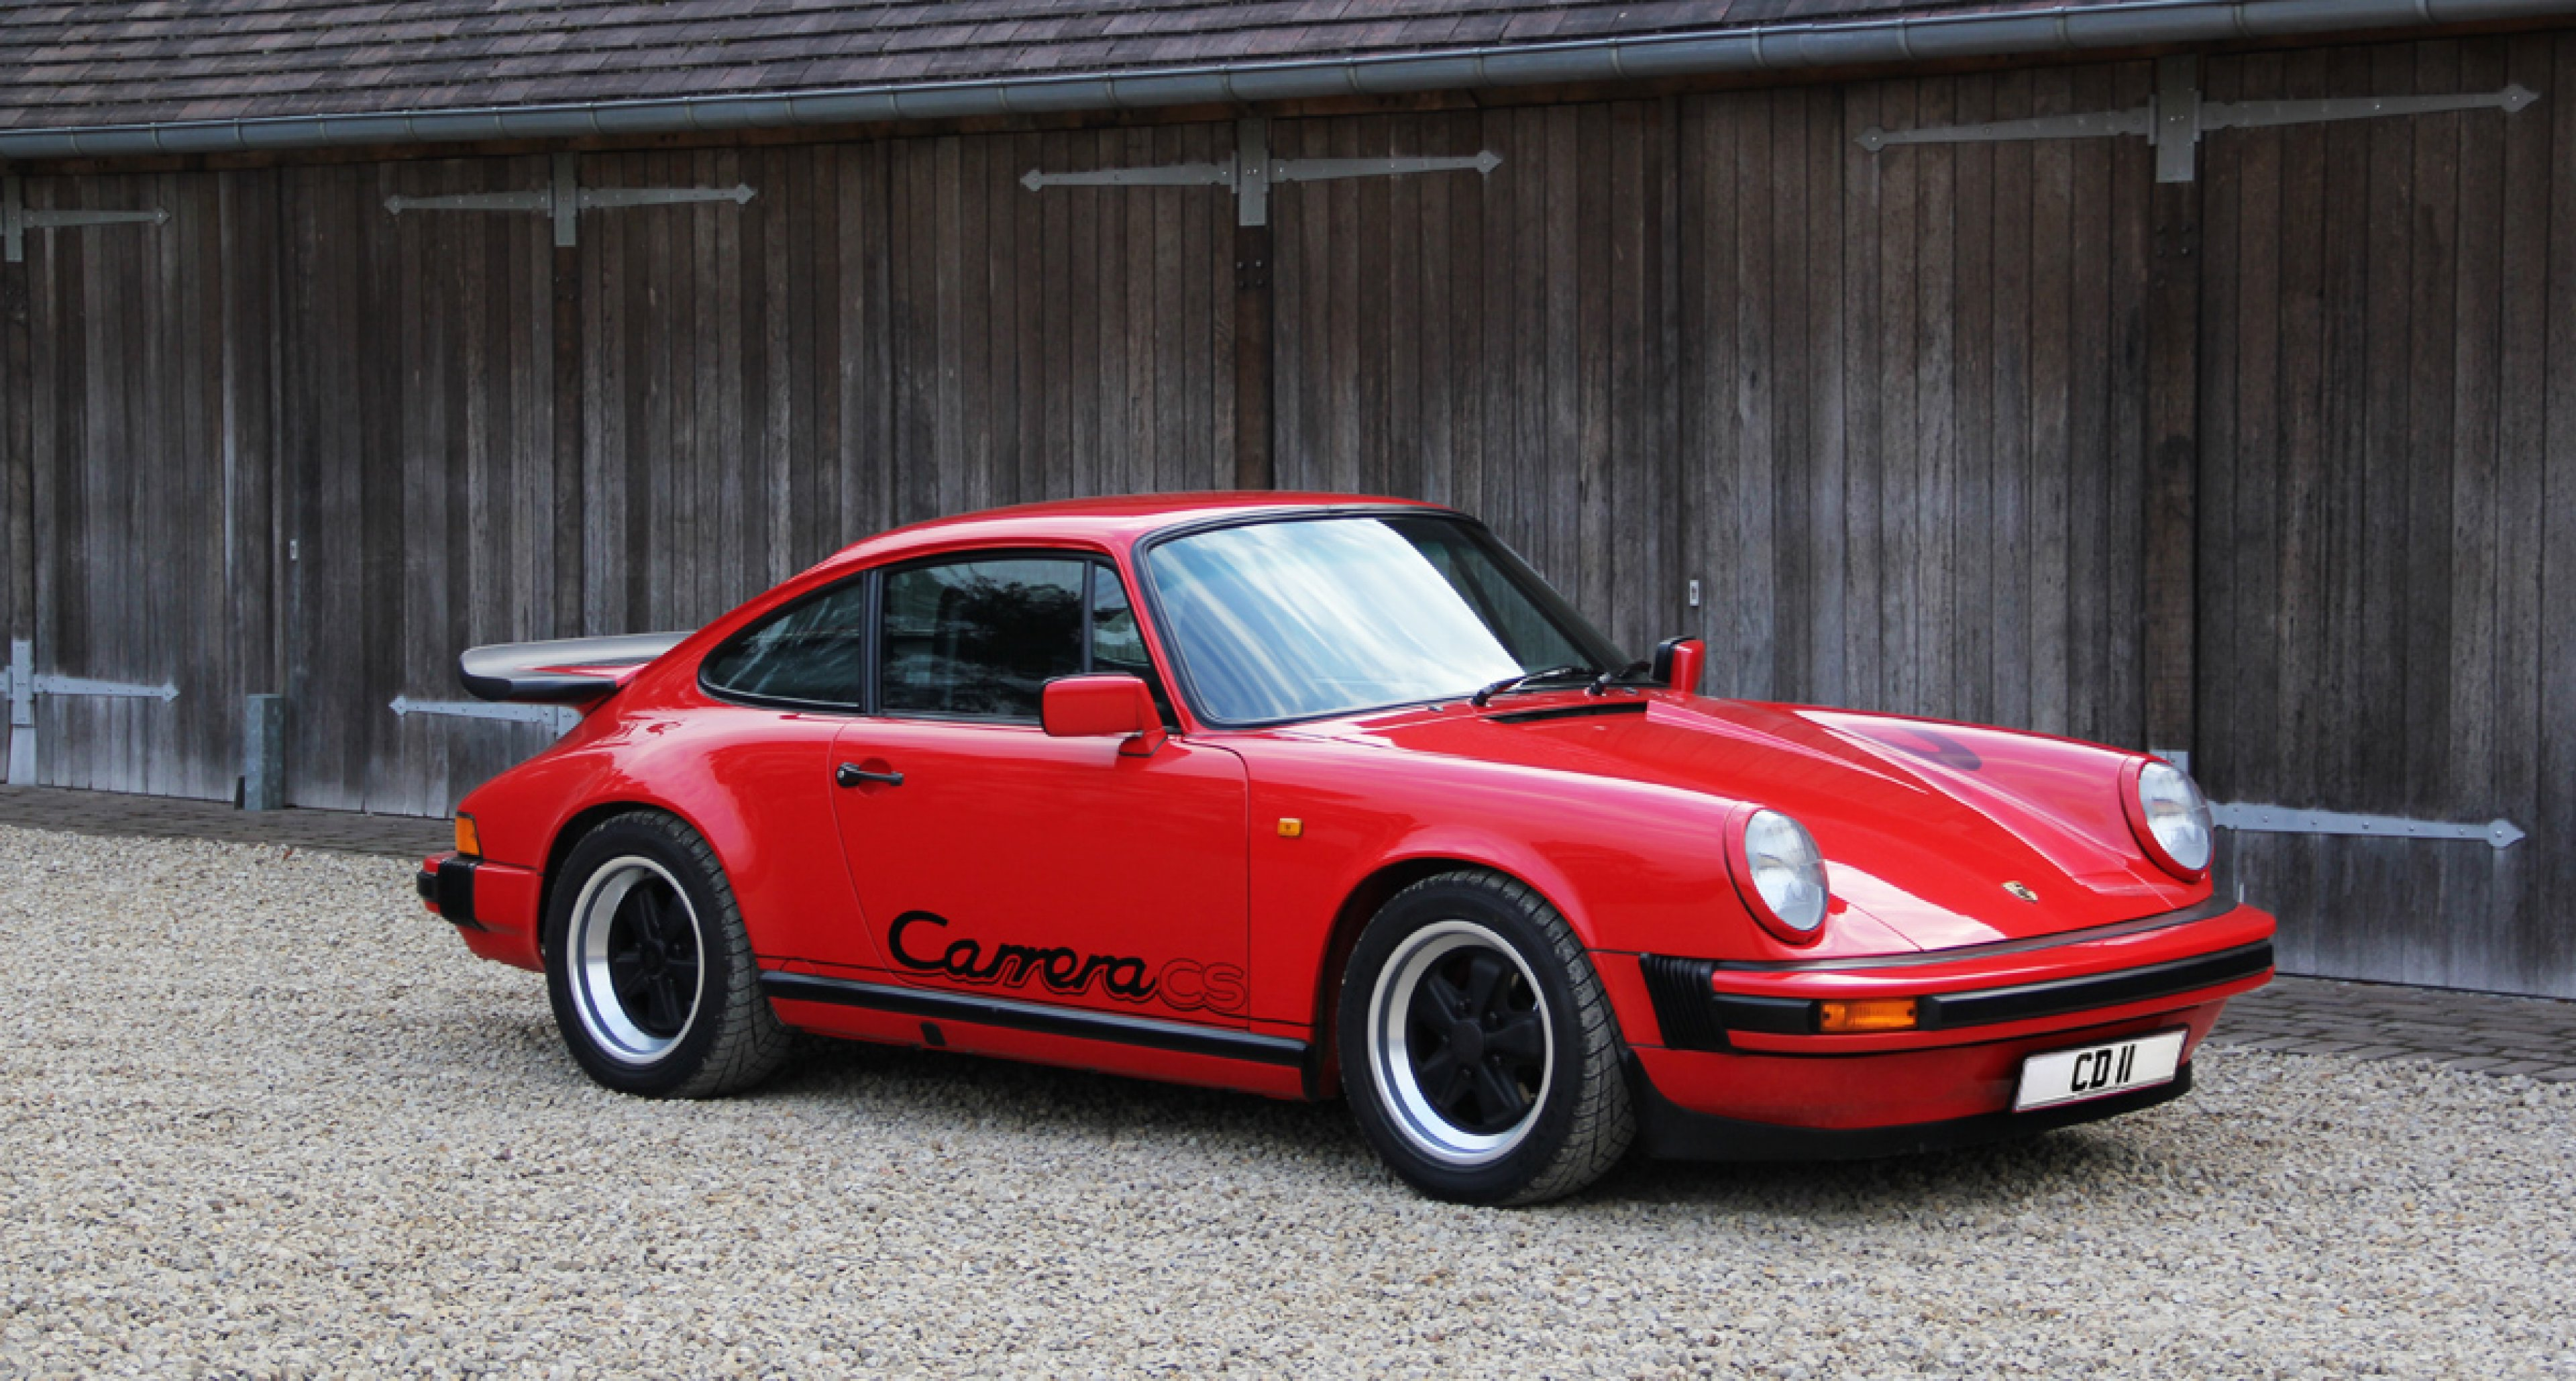 Porsche 911 Carrera CS The lost gentleman